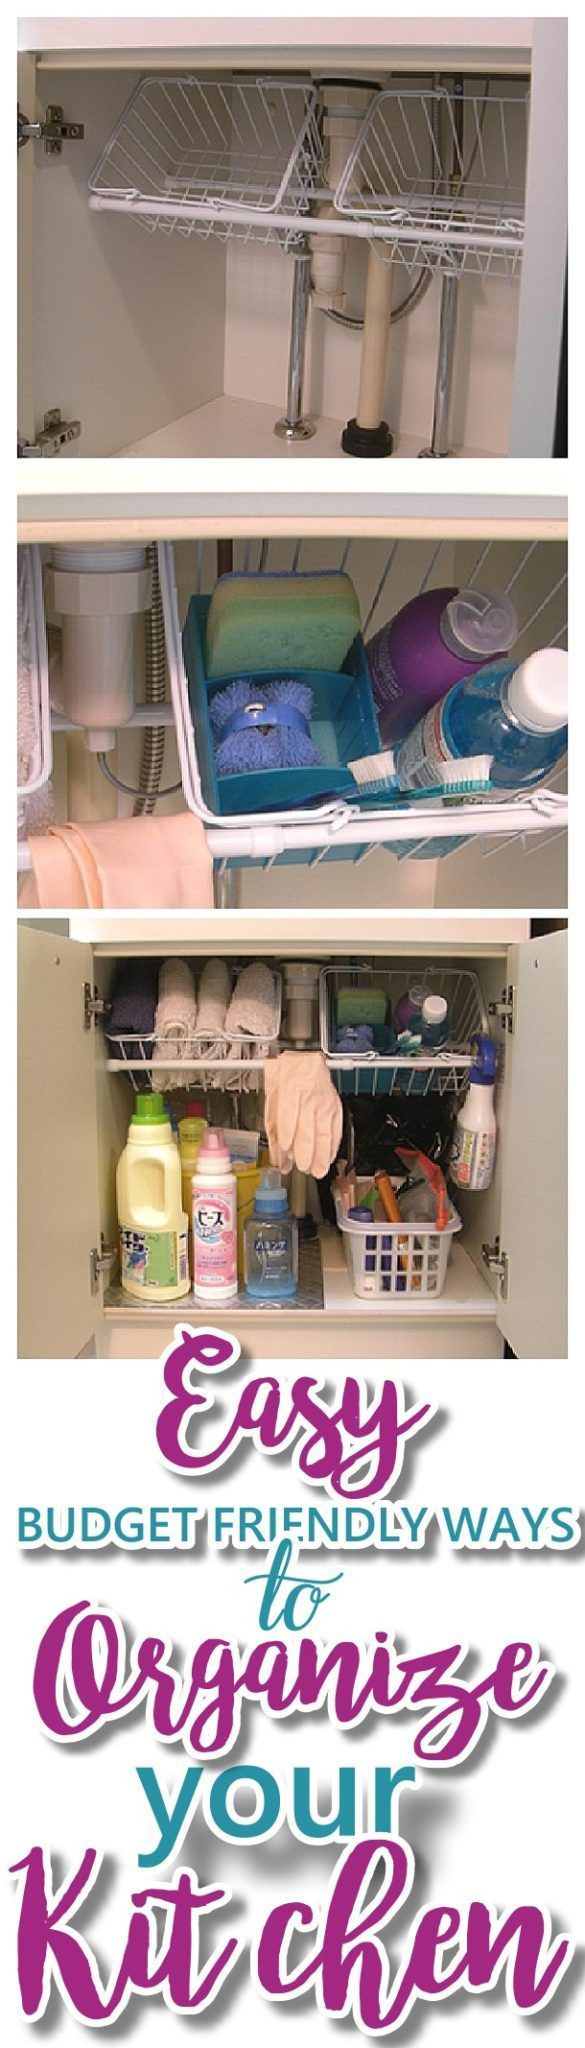 EASY Budget Friendly Ways To Organize Your Kitchen - The very best CHEAP, quick ...